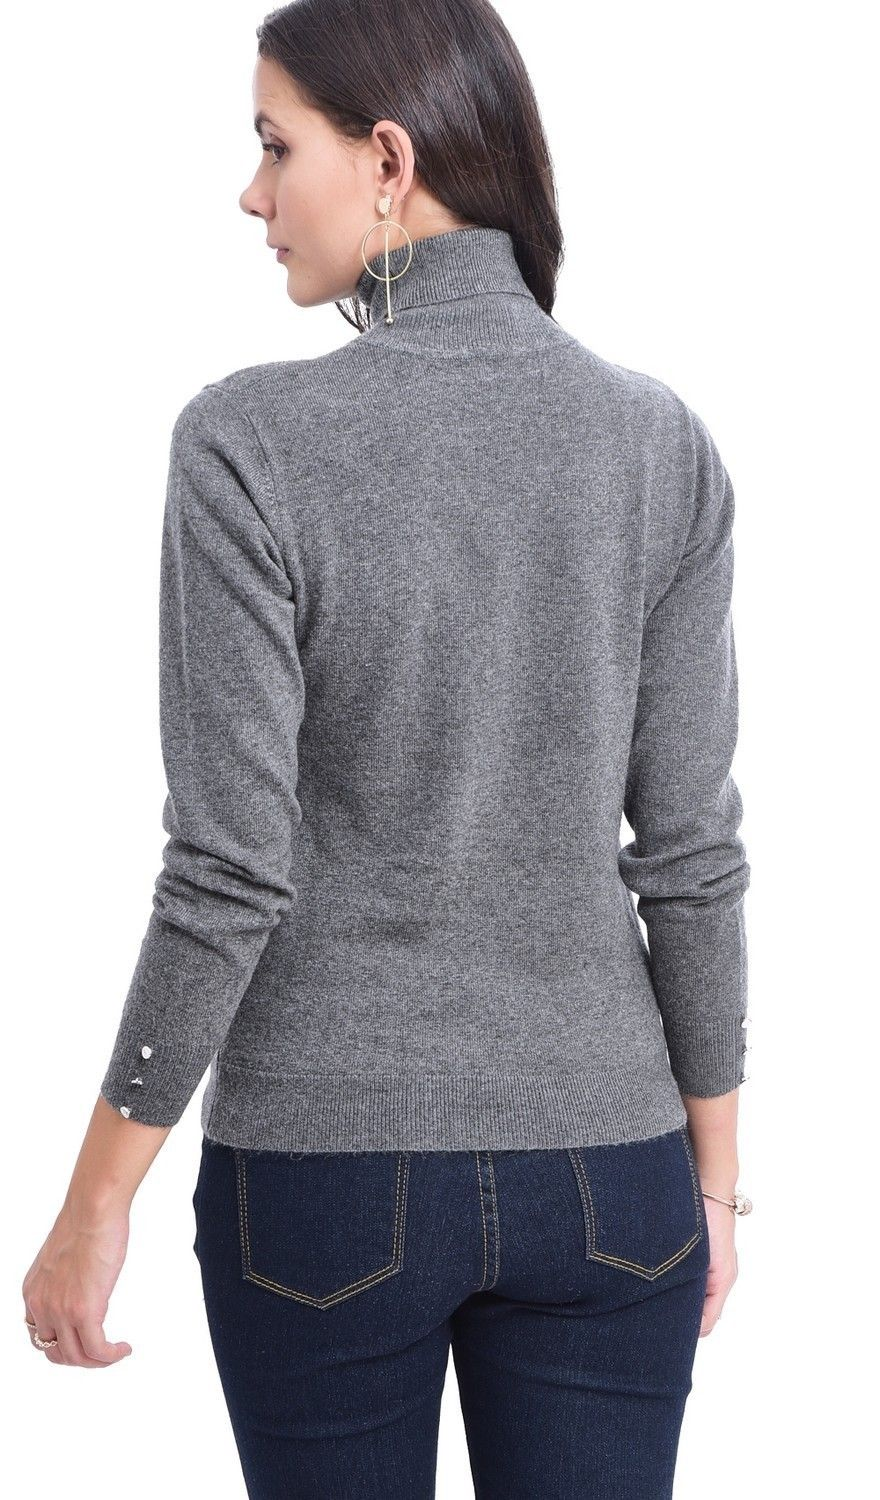 C&JO Turtleneck Sweater with Buttoned Sleeves in Grey